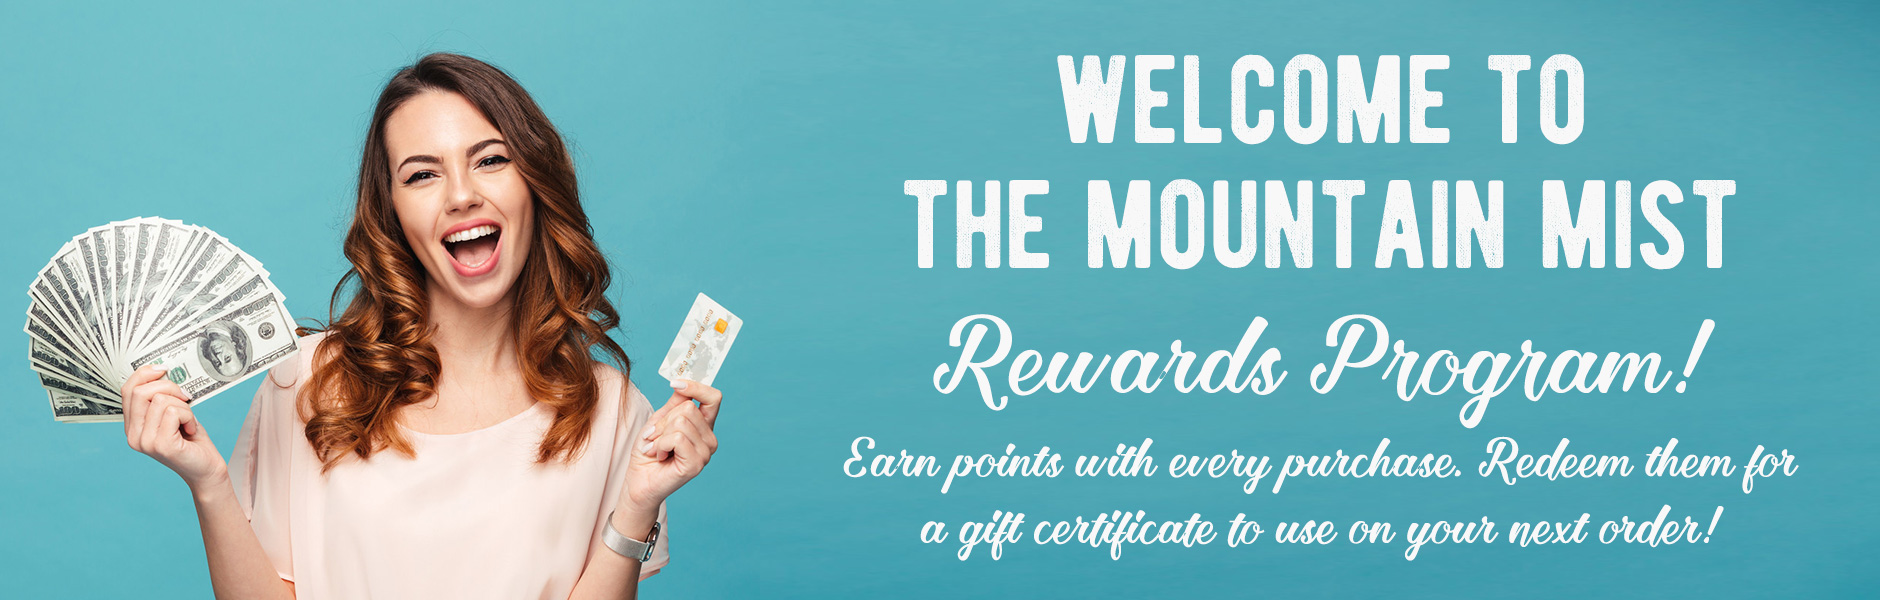 welcome to the Mountain Mist Rewards Program!